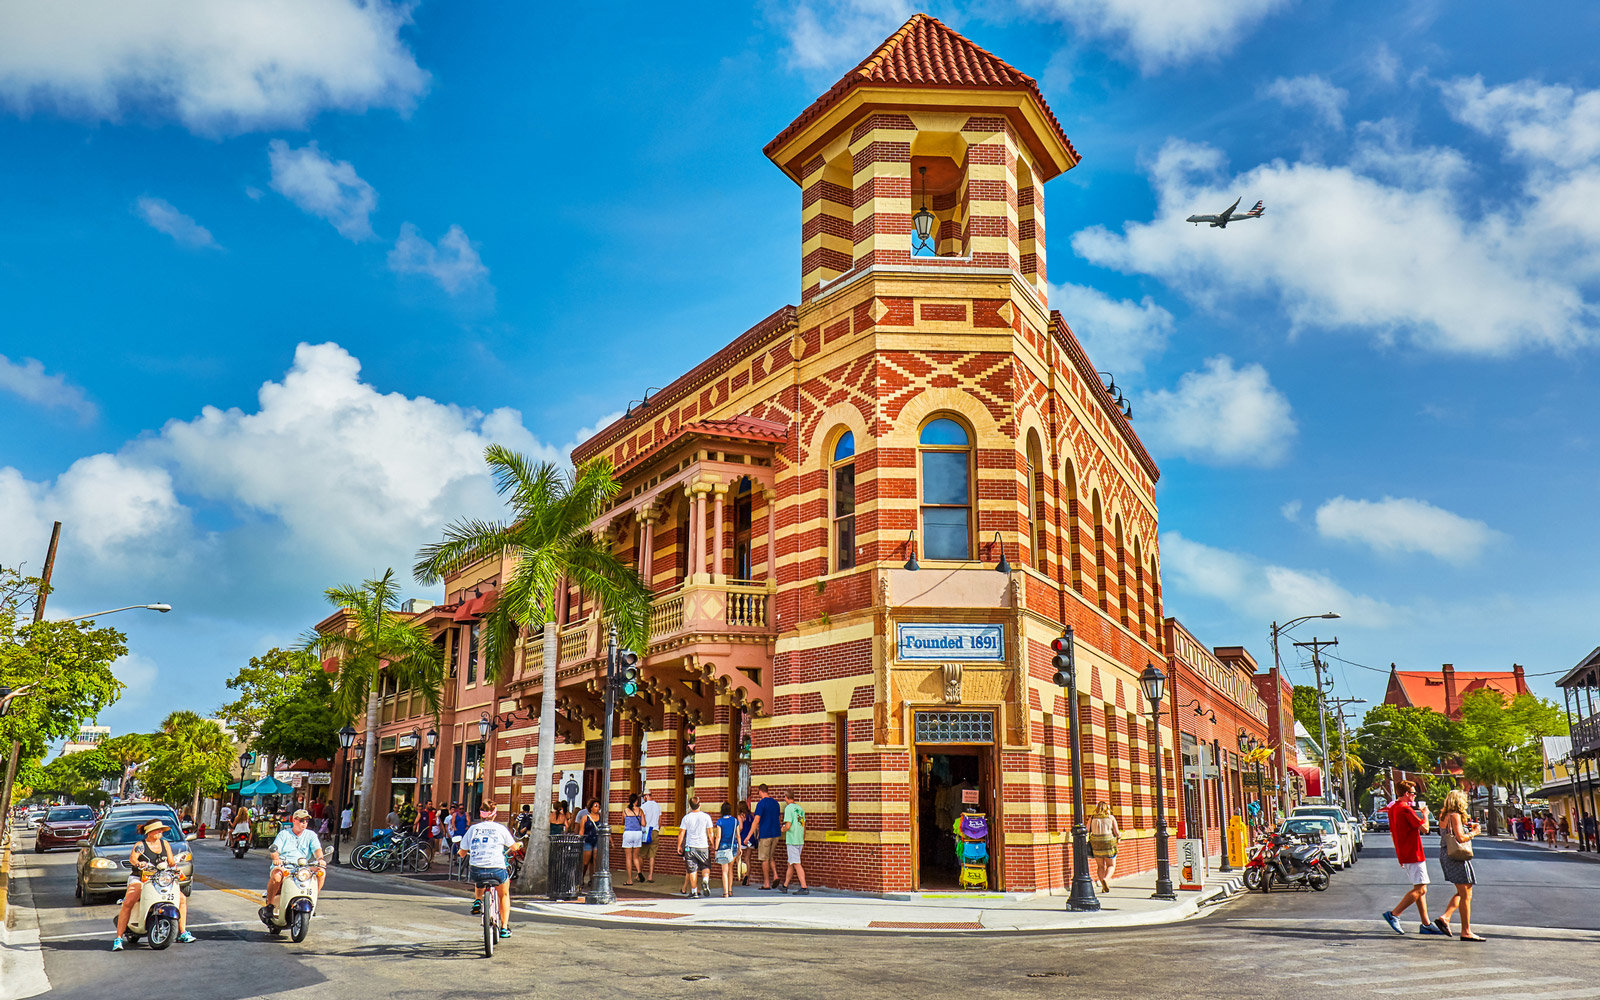 Historical brick building,Which was a former bank, founded in 1891, Key West,Florida,USA